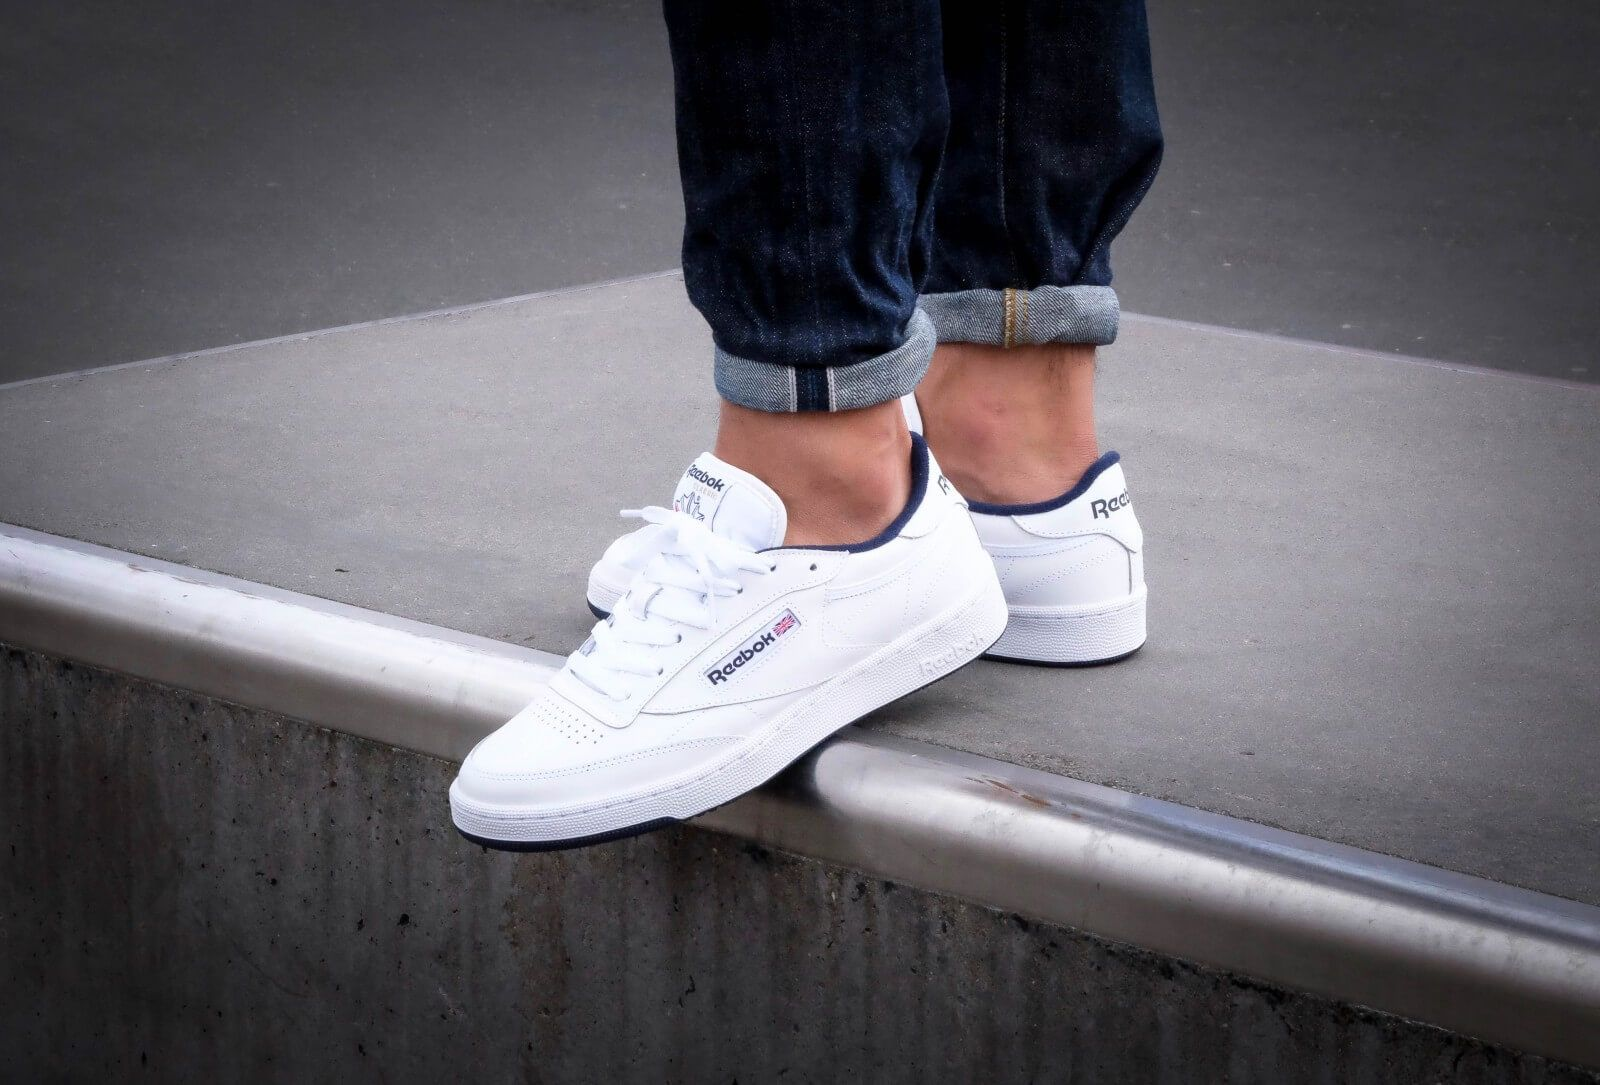 92a5f09d8a5 Reebok Club C 85 White Navy - AR0457